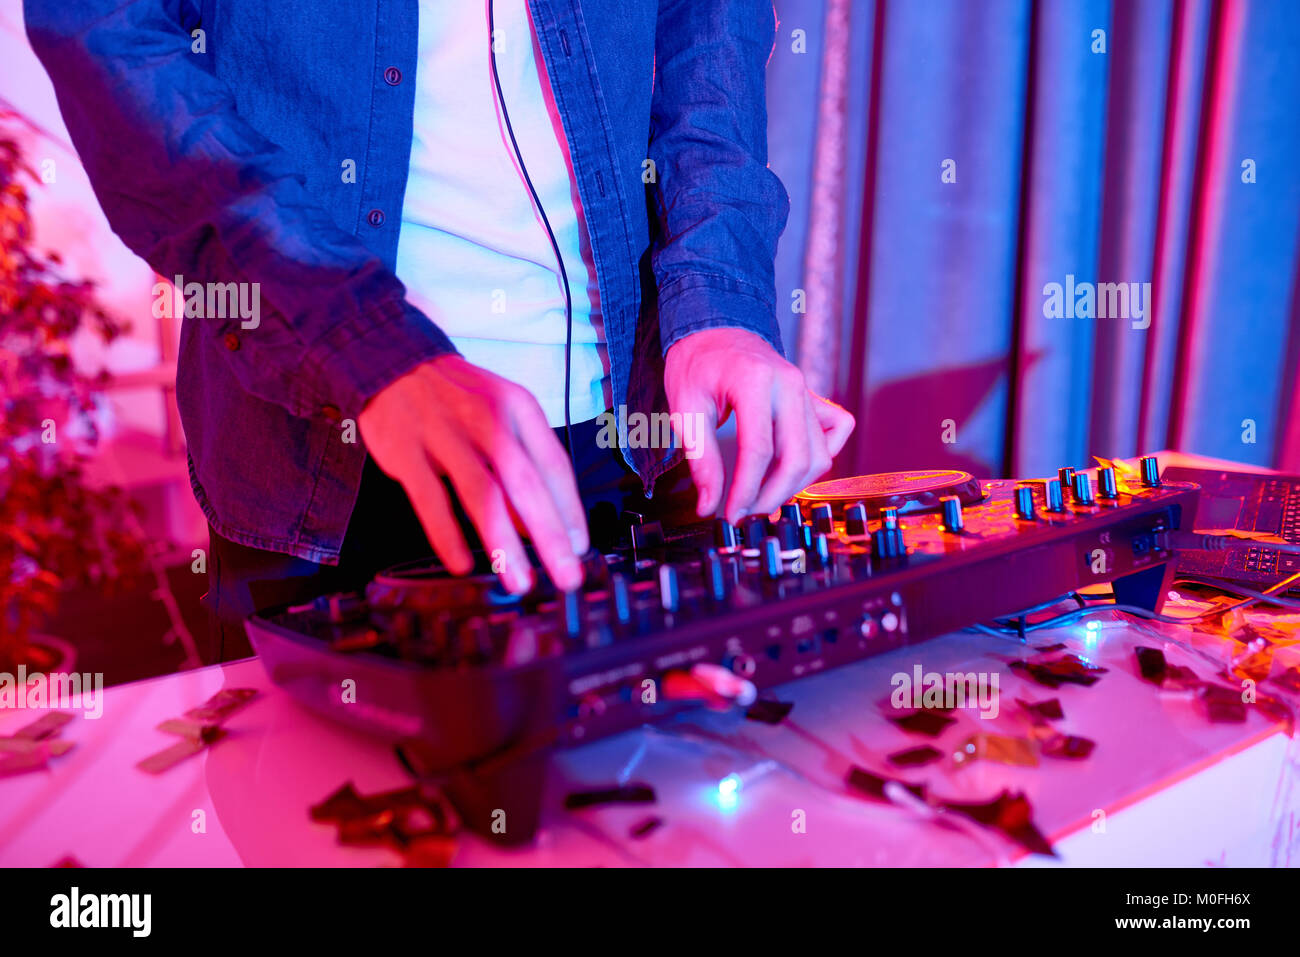 DJ Playing Music in Club - Stock Image